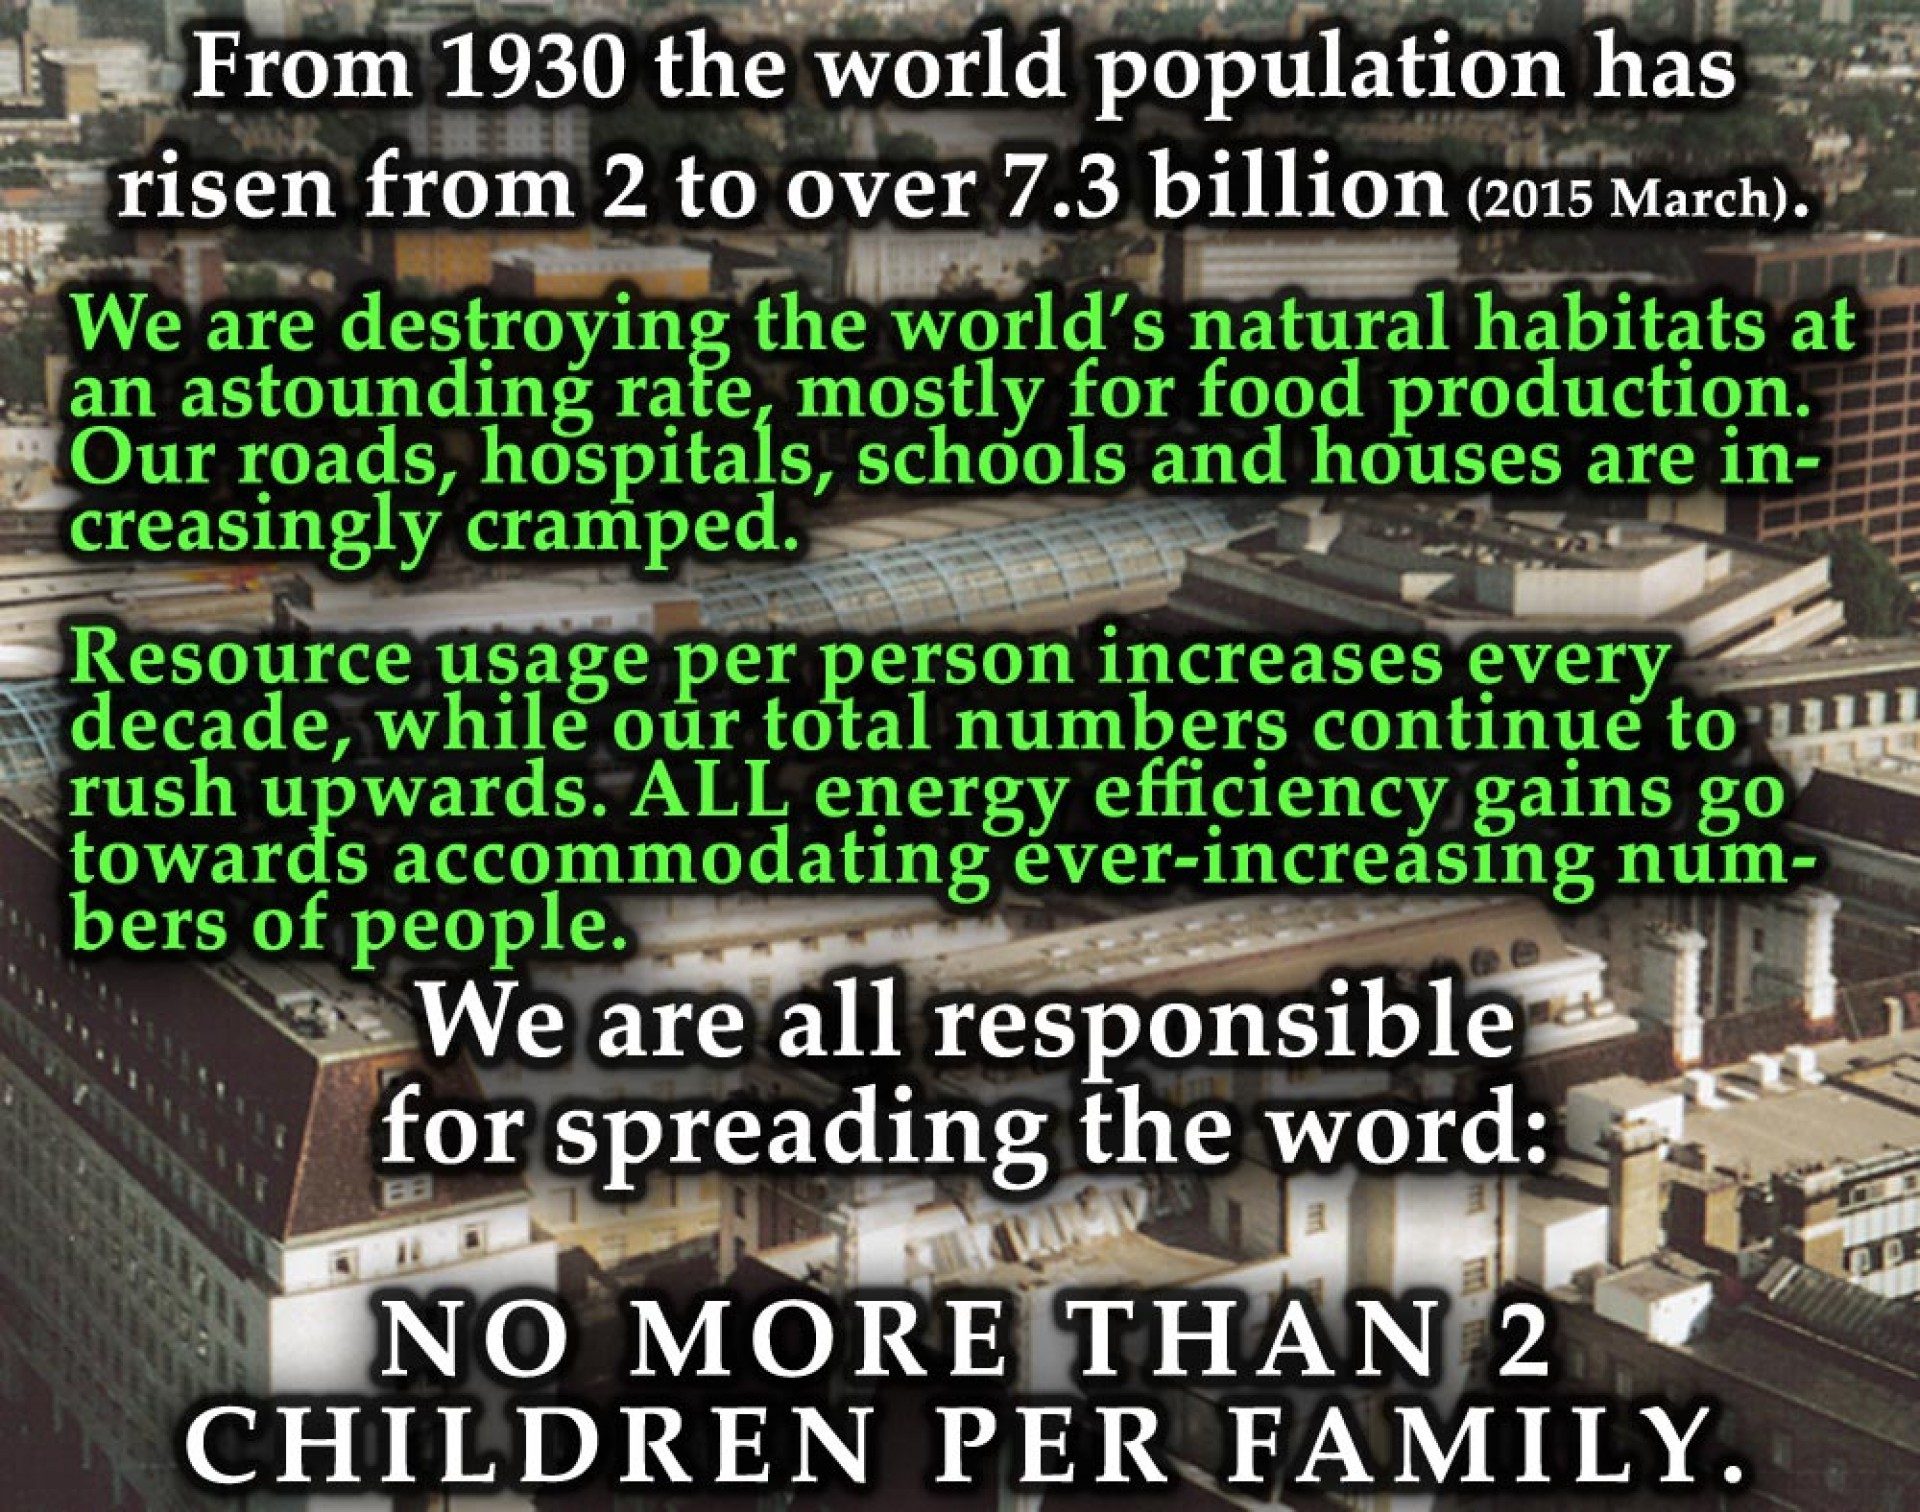 011 No More Than 2 Children Per Family Cause And Effect Of Overpopulation Essay Remarkable 1920